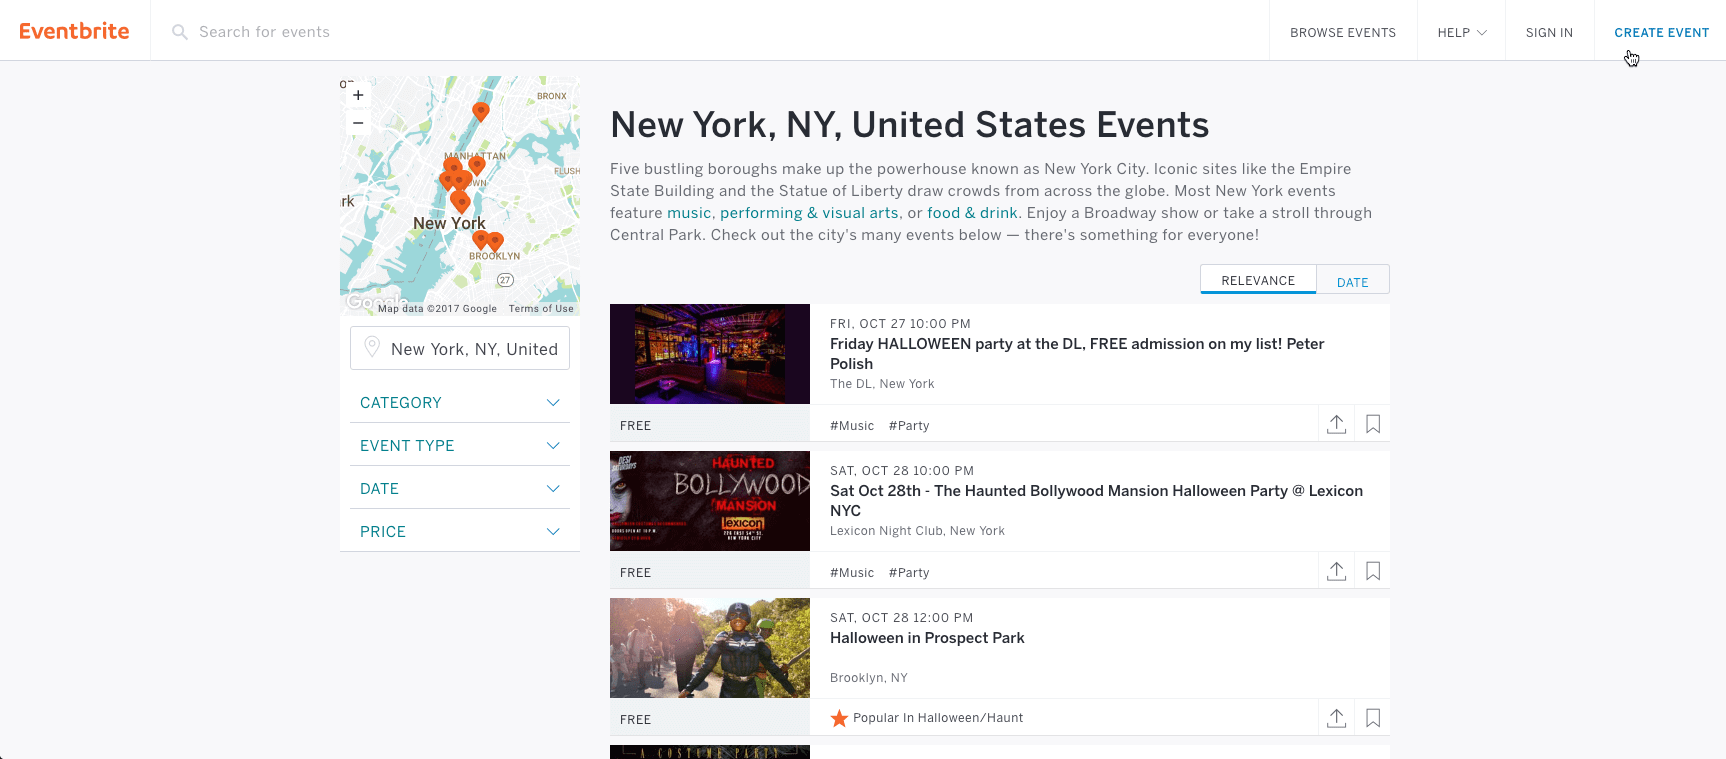 Eventbrite Image of Events in New York